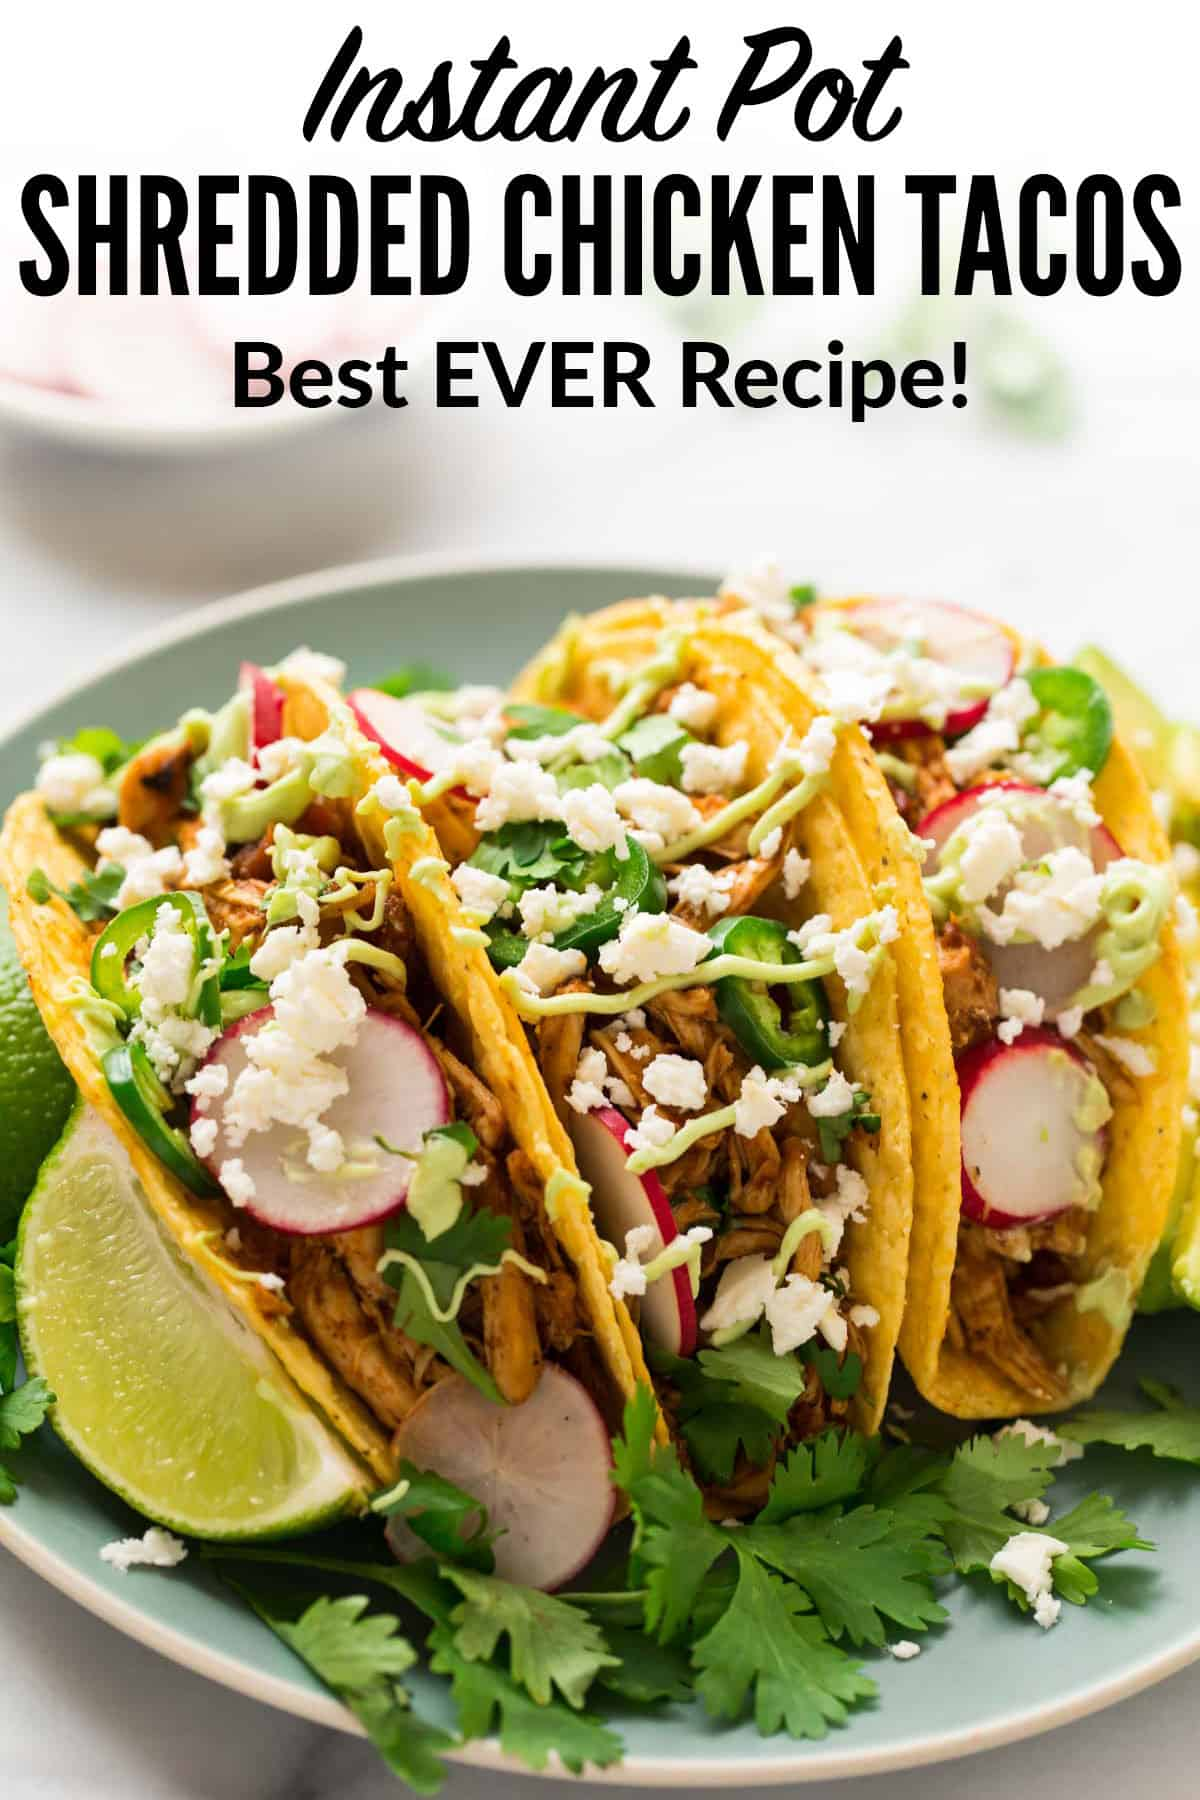 Instant Pot Shredded Chicken Tacos Crowd Pleasing Wellplated Com